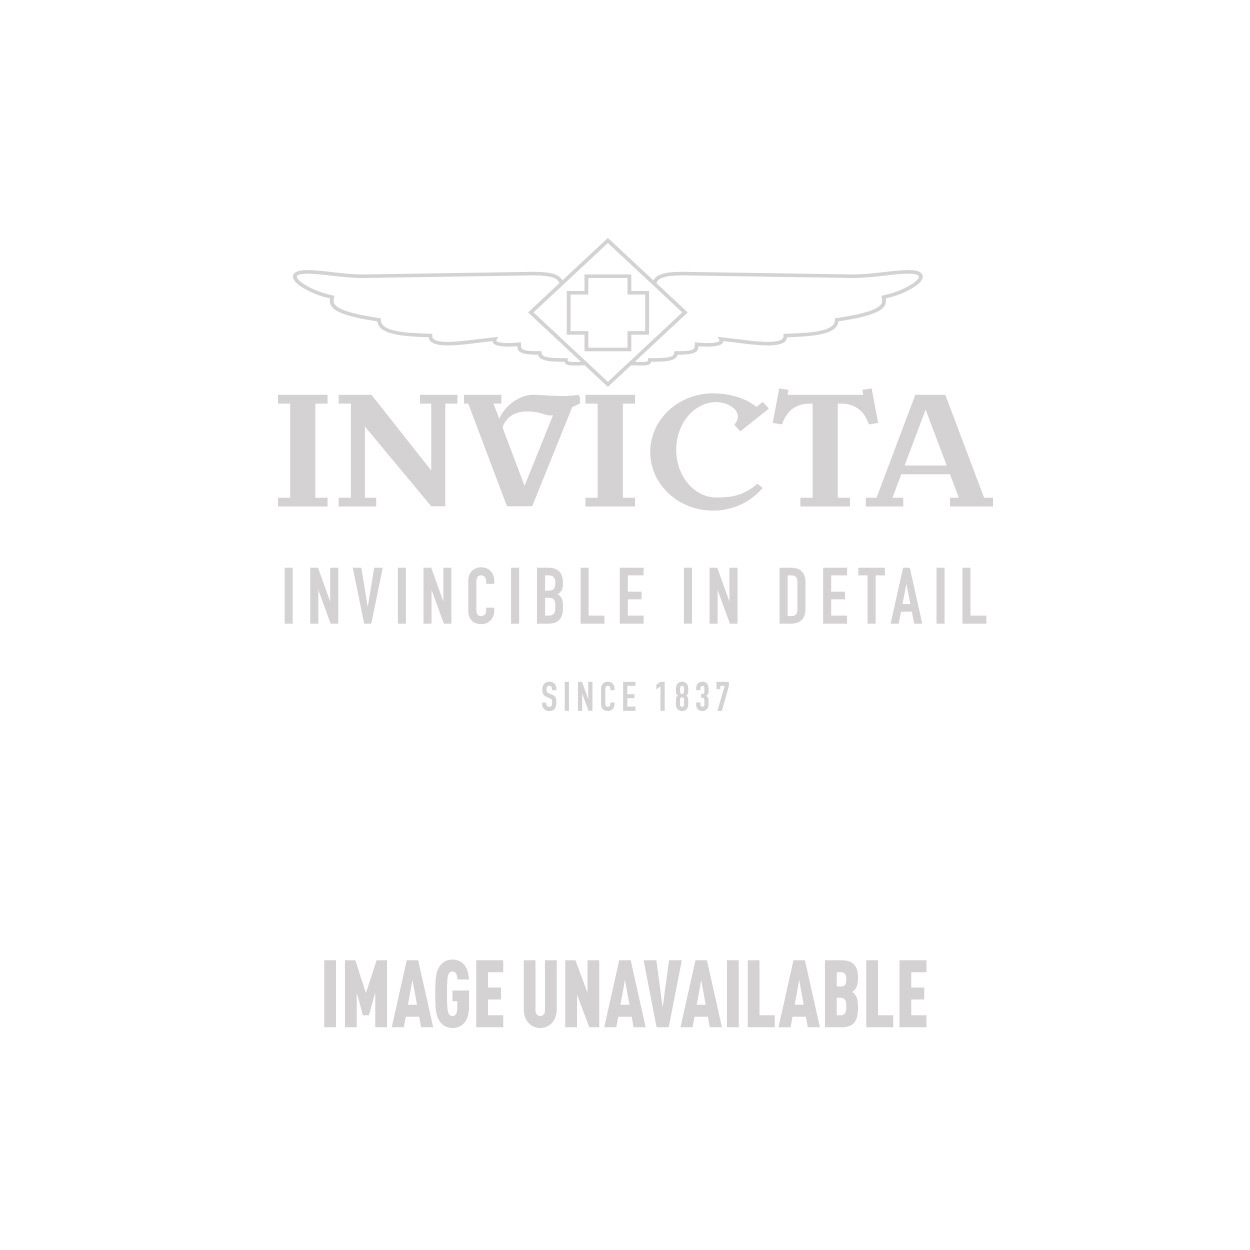 Invicta Specialty Quartz Watch - Stainless Steel case Stainless Steel band - Model 17013